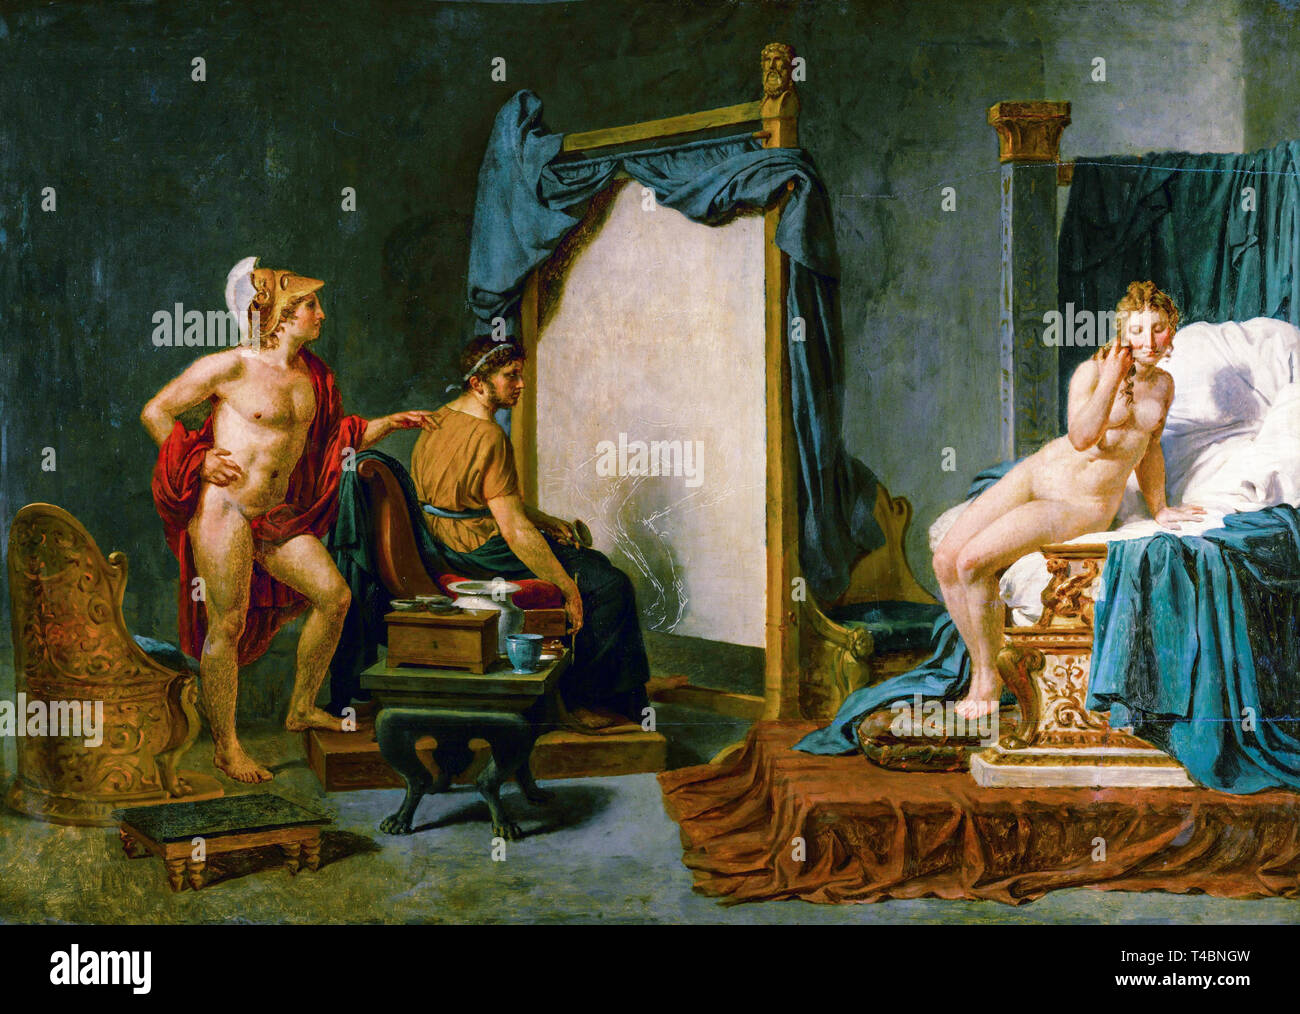 Jacques-Louis David, Apelles Painting Campaspe in the Presence of Alexander the Great, 18th or 19th Century Stock Photo